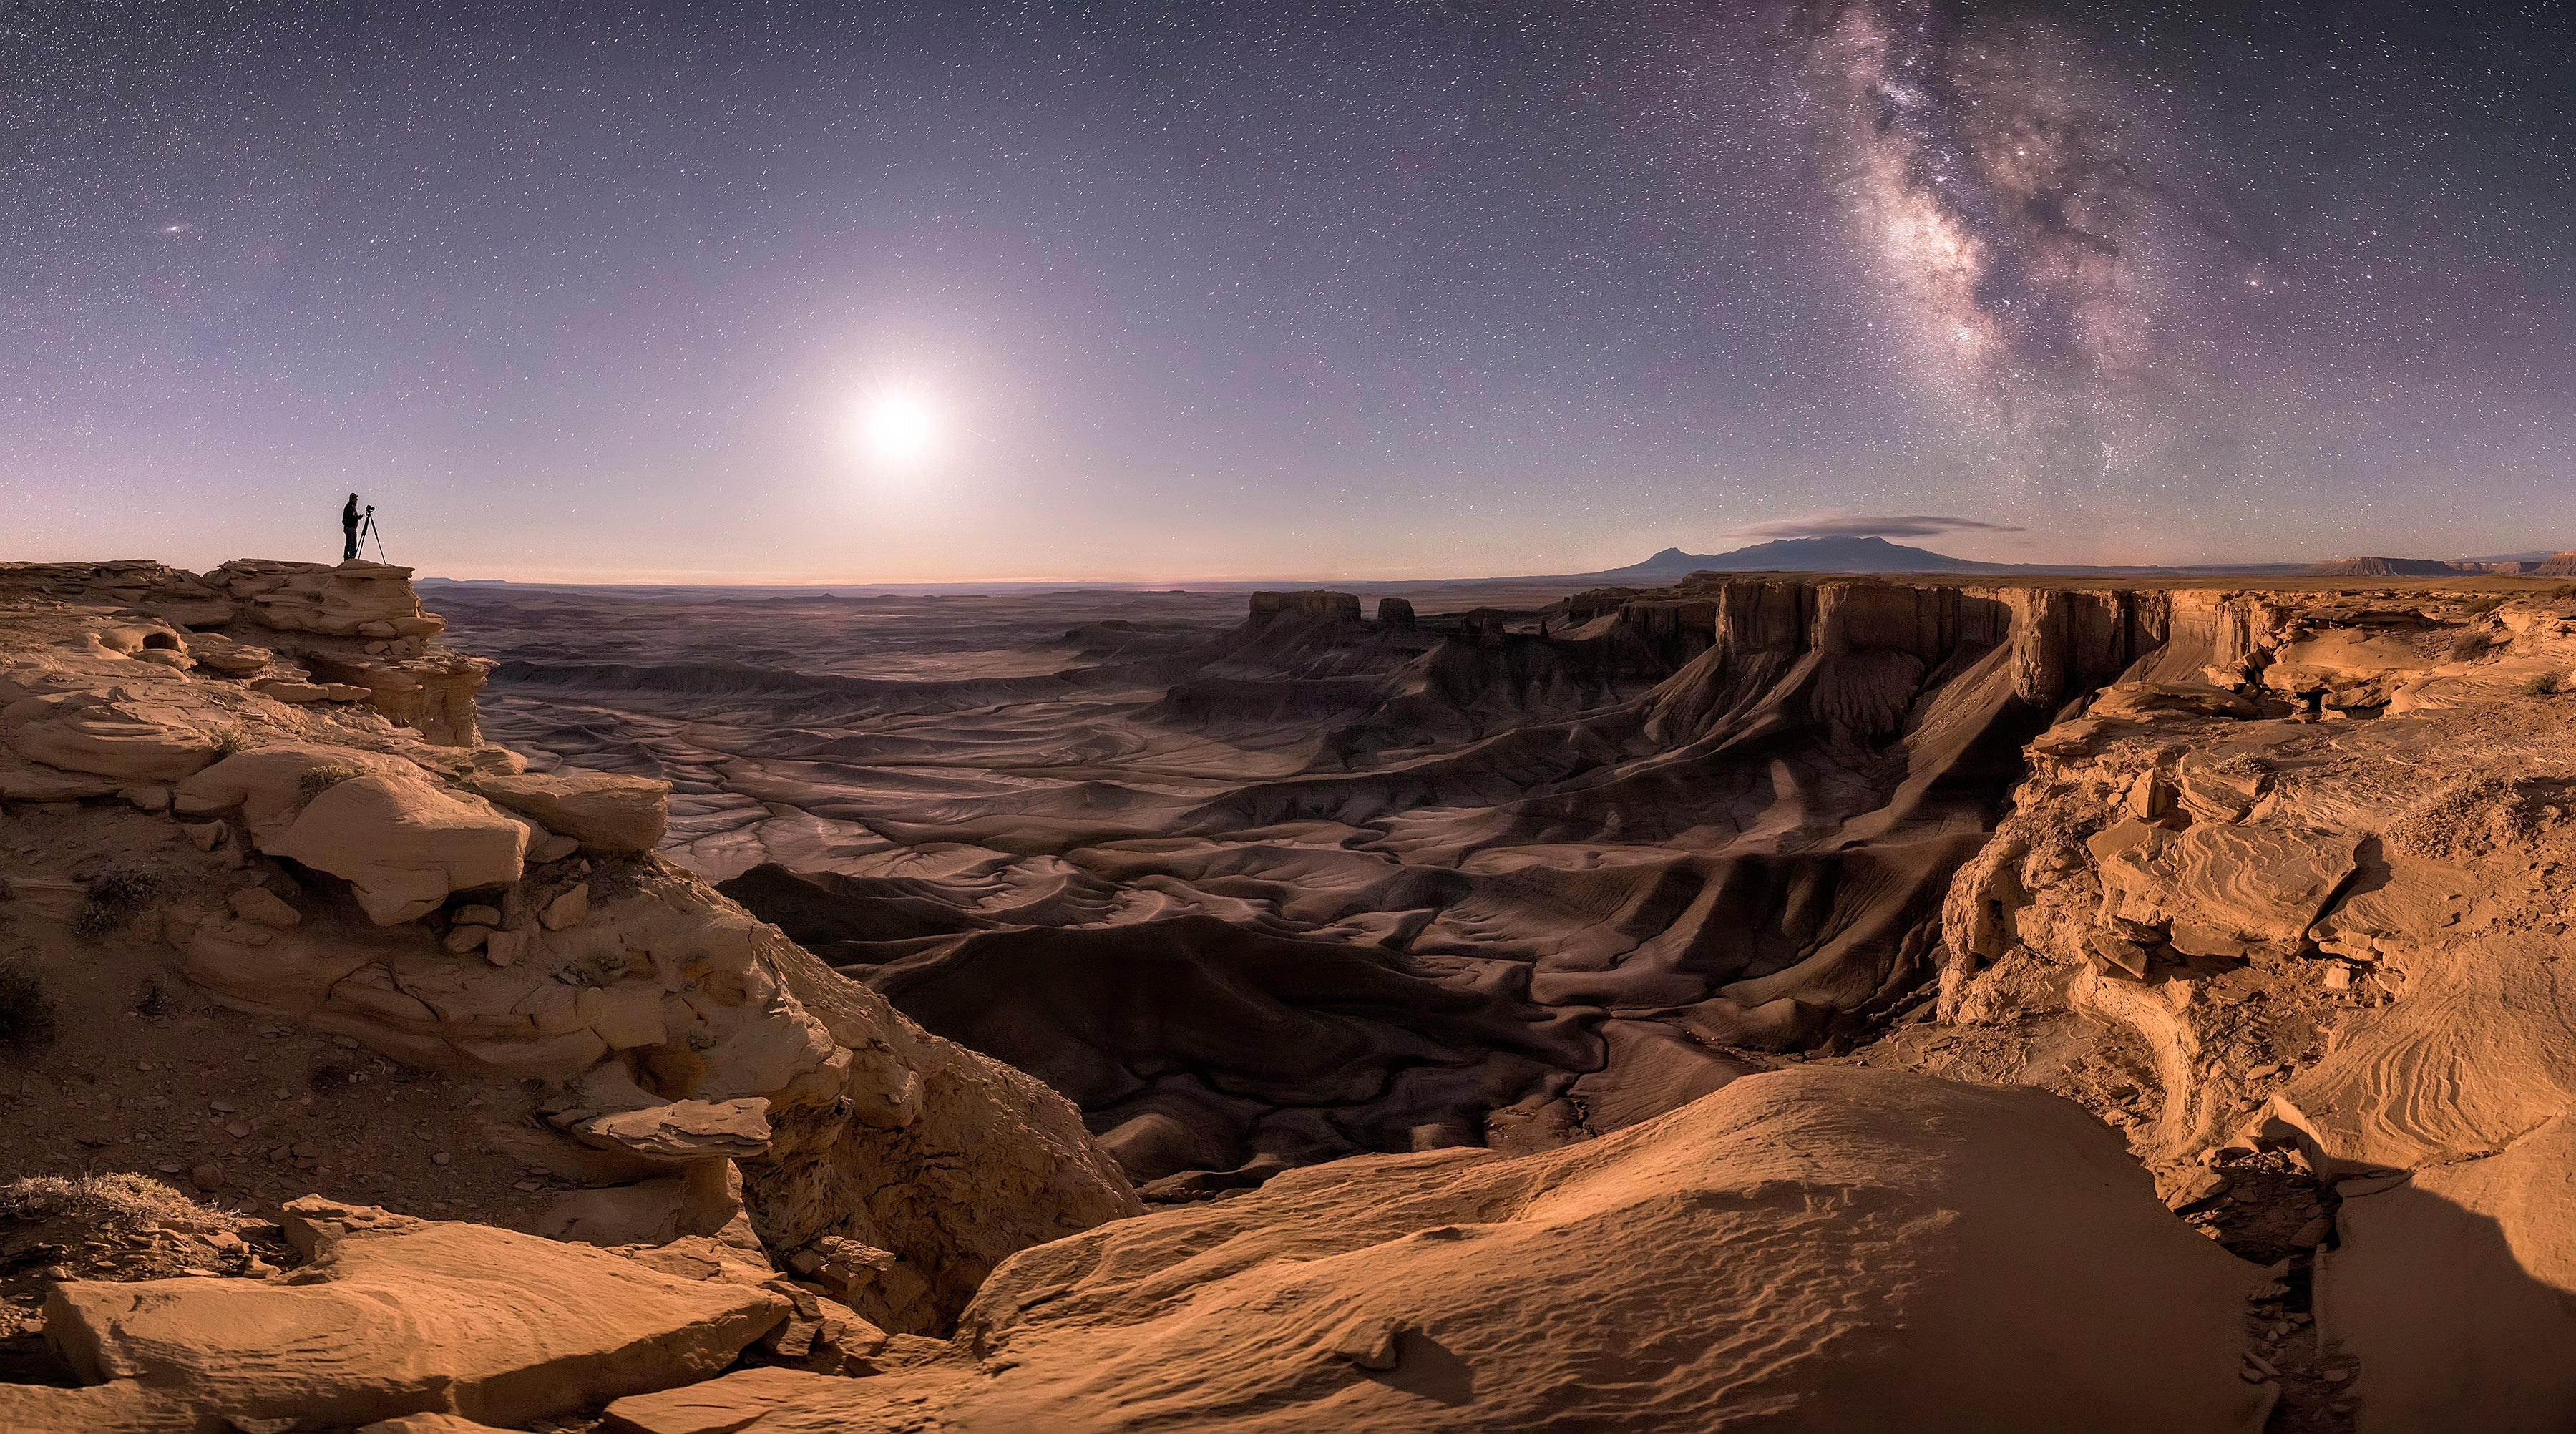 See The Glorious Winners Of The 2018 Astronomy Photographer Of The Year Contest